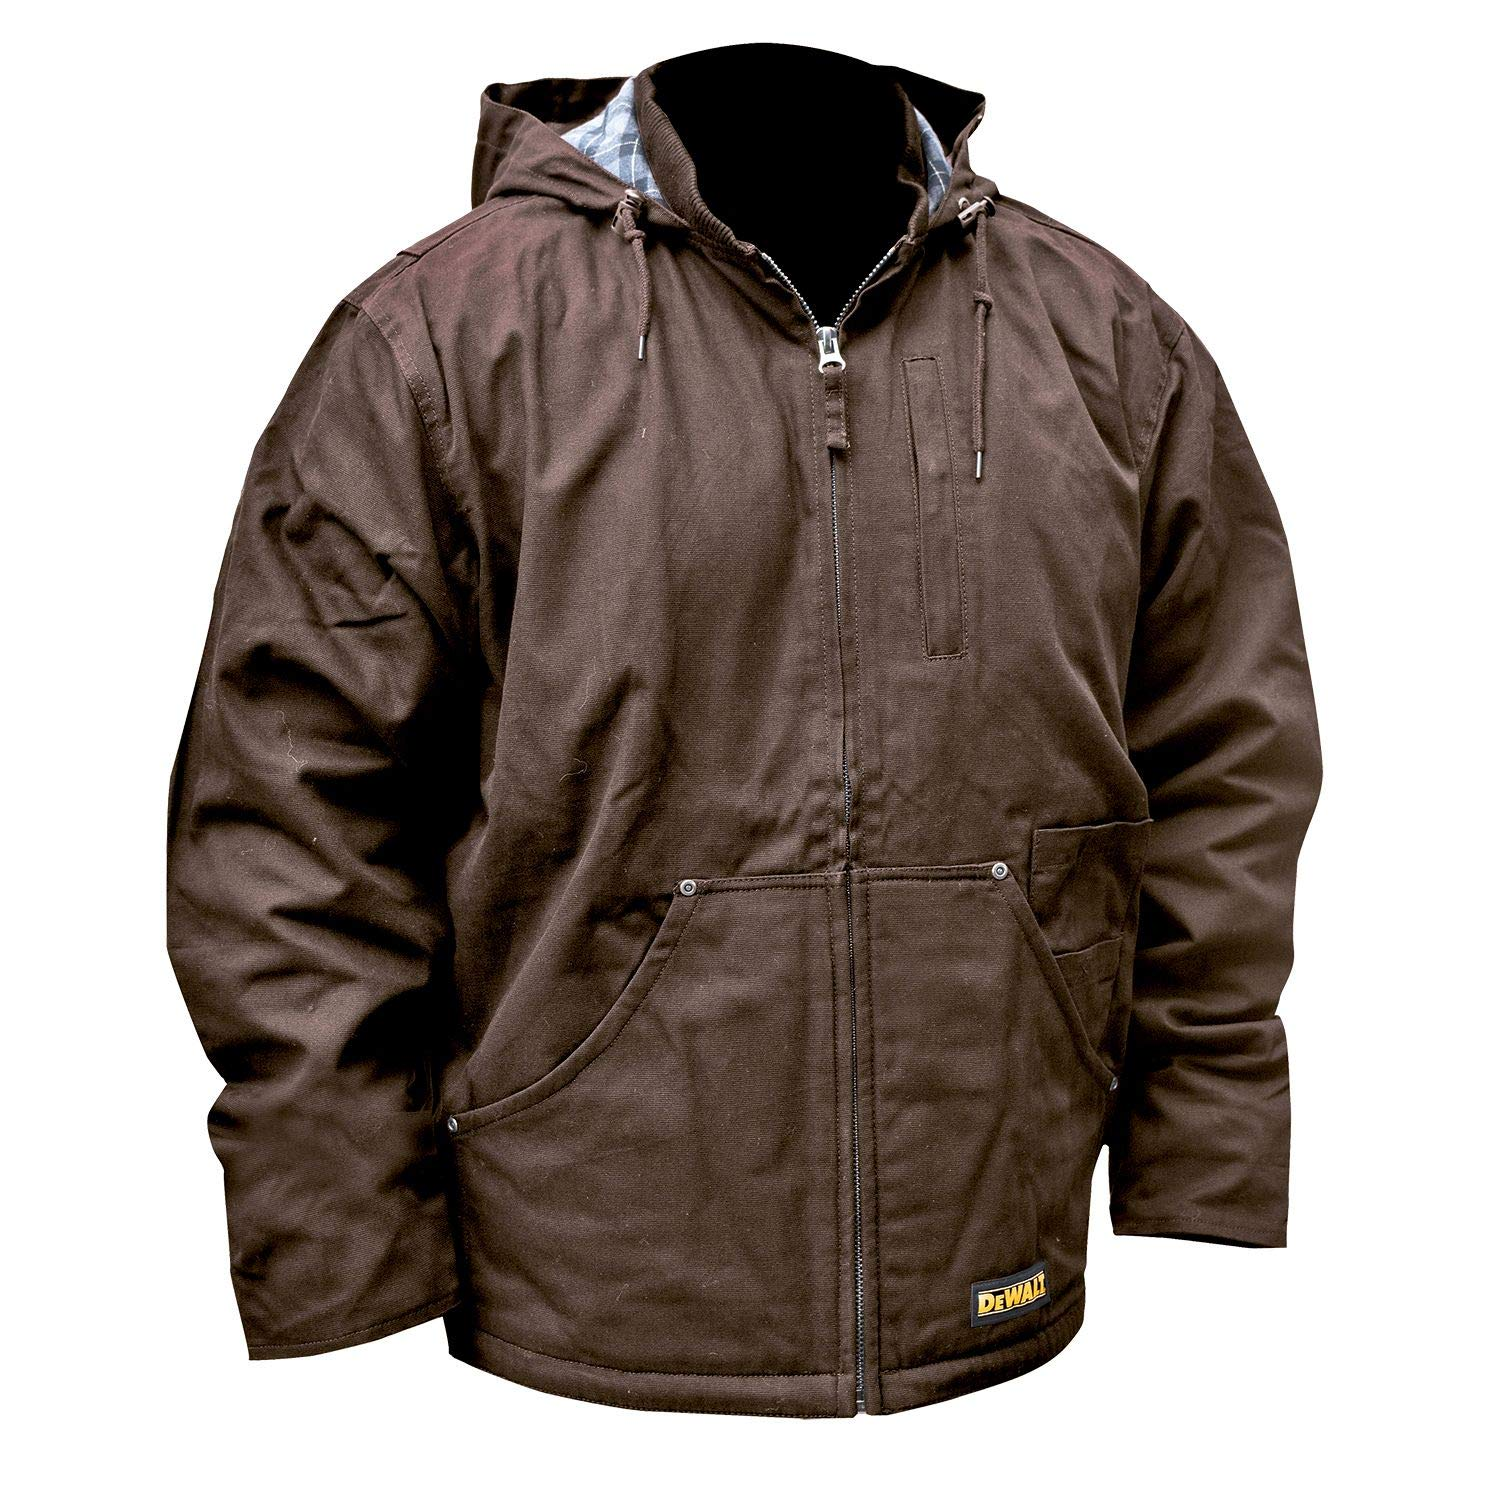 Radians DCHJ076ATB-XL Heavy Duty Tobacco Jacket with DCB092 Power Adapter, X-Large